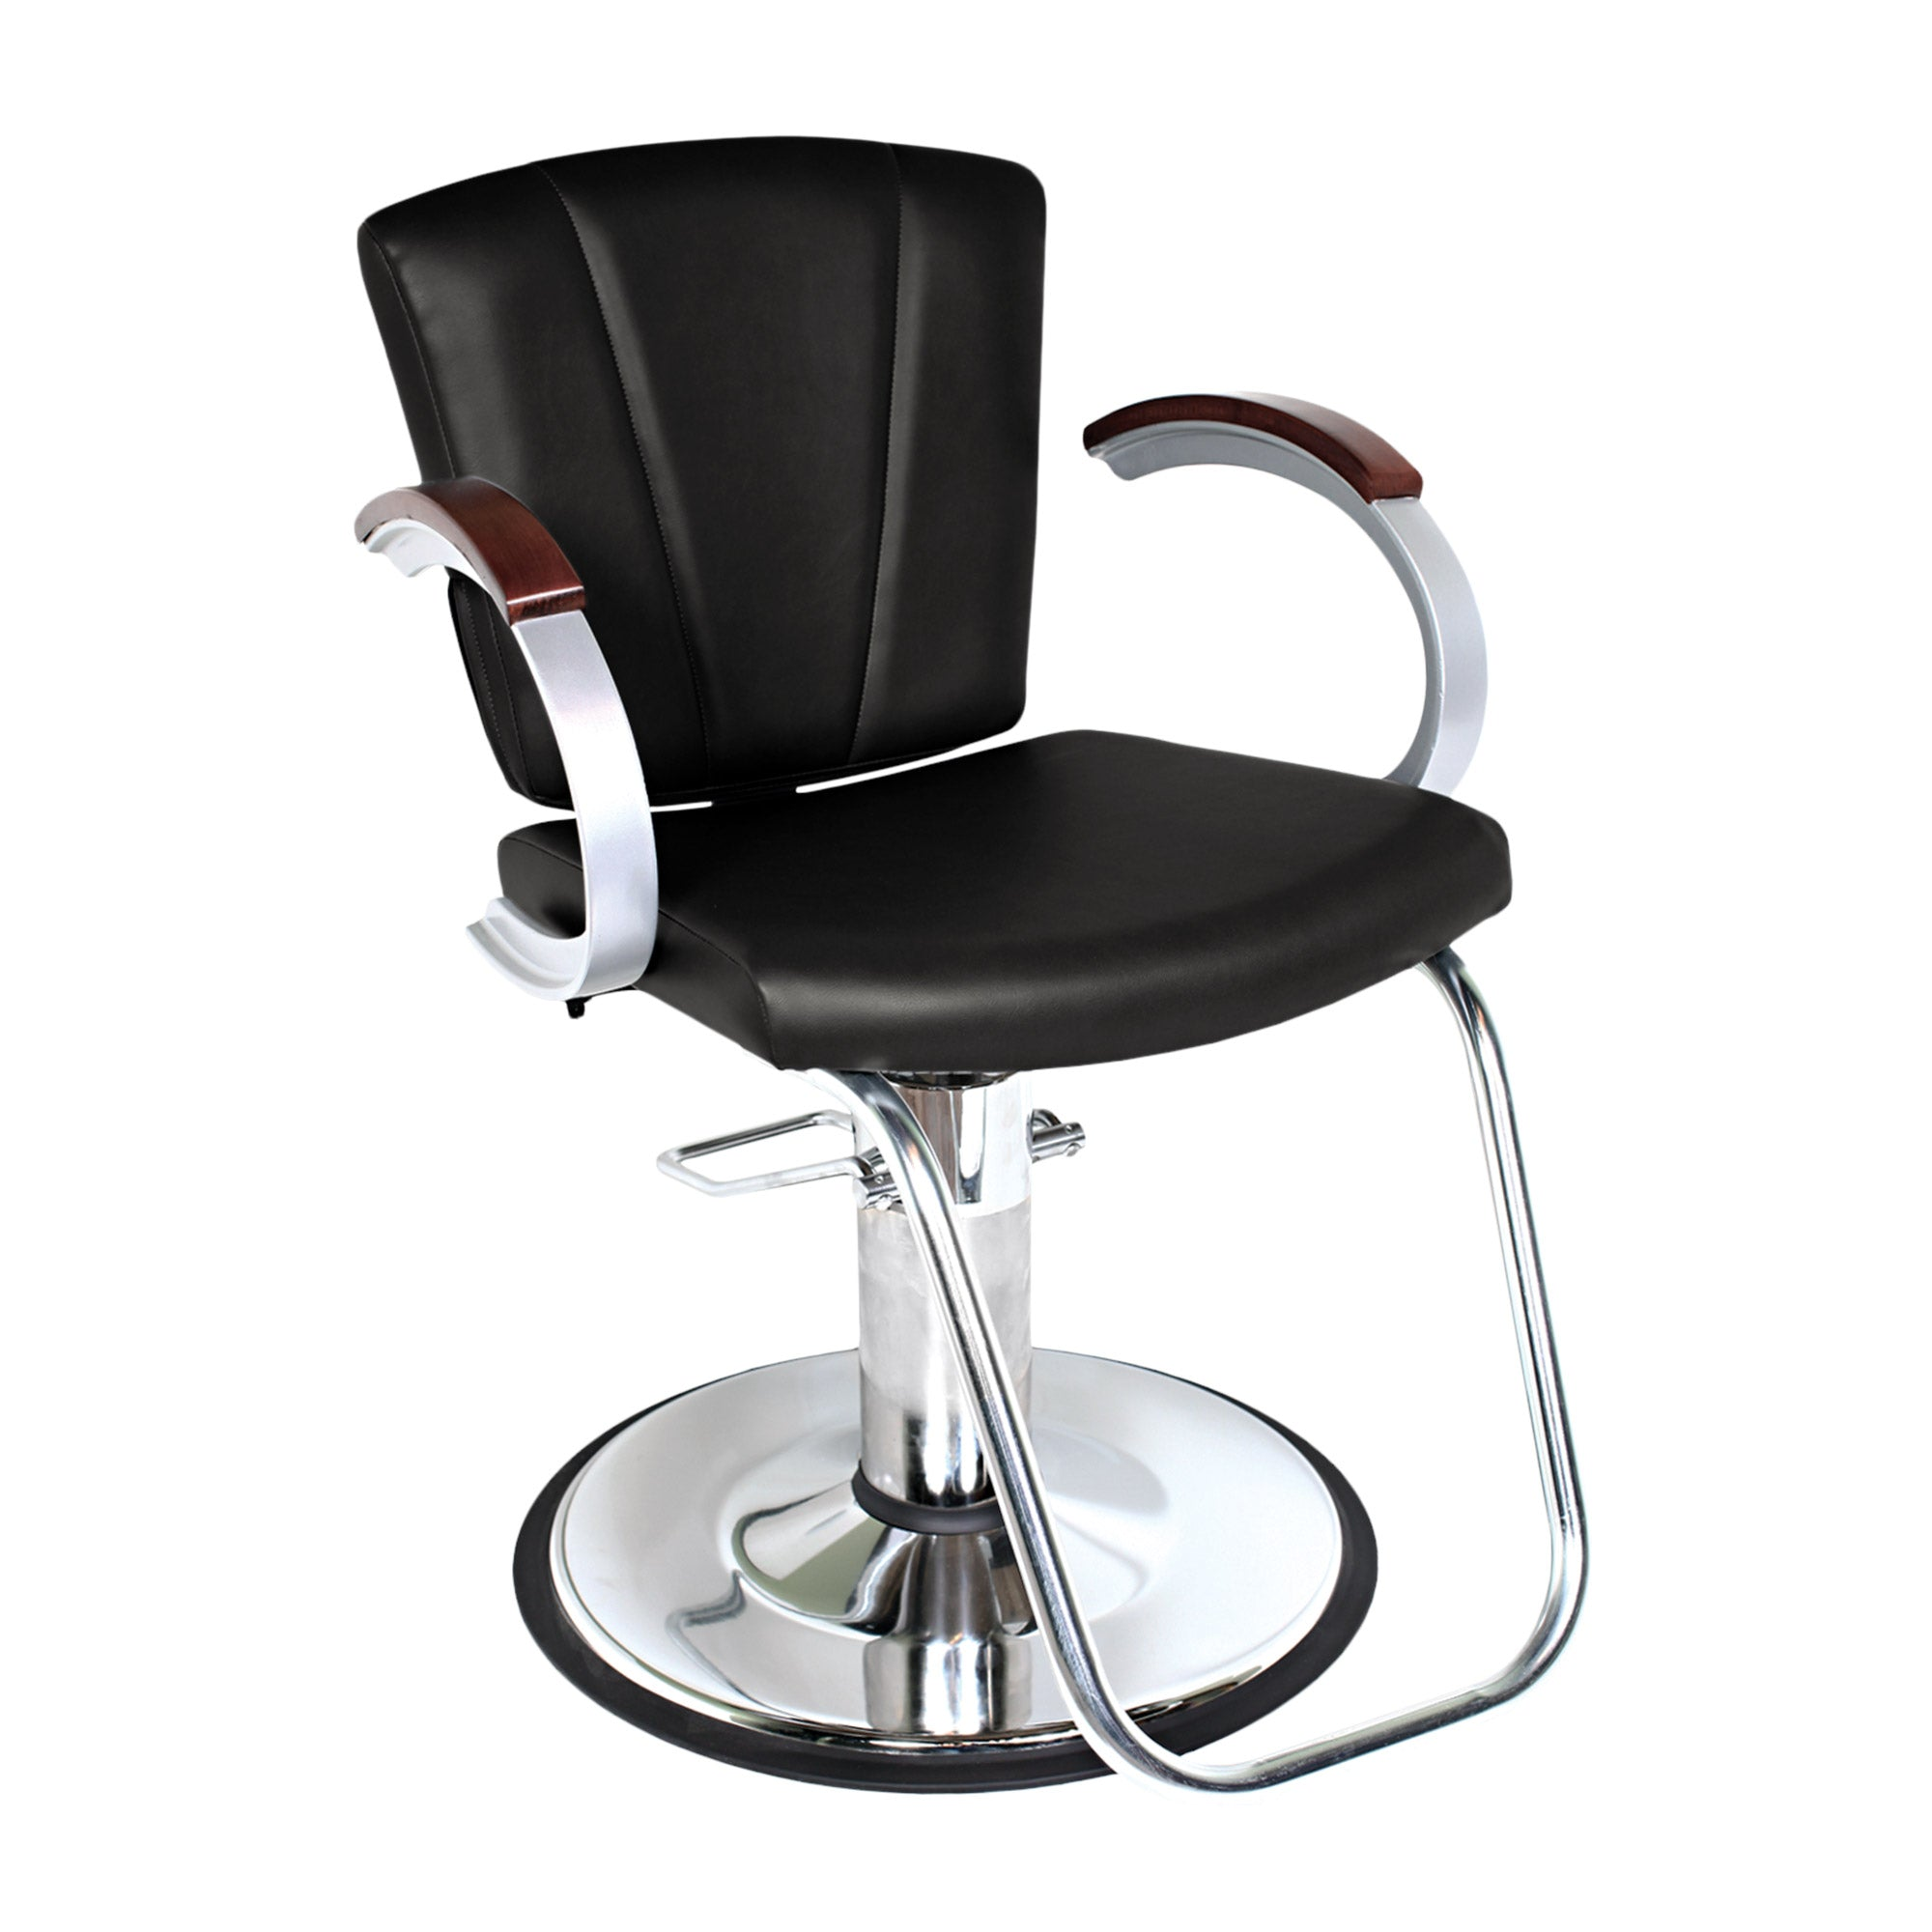 Vanelle SA Styling Chair